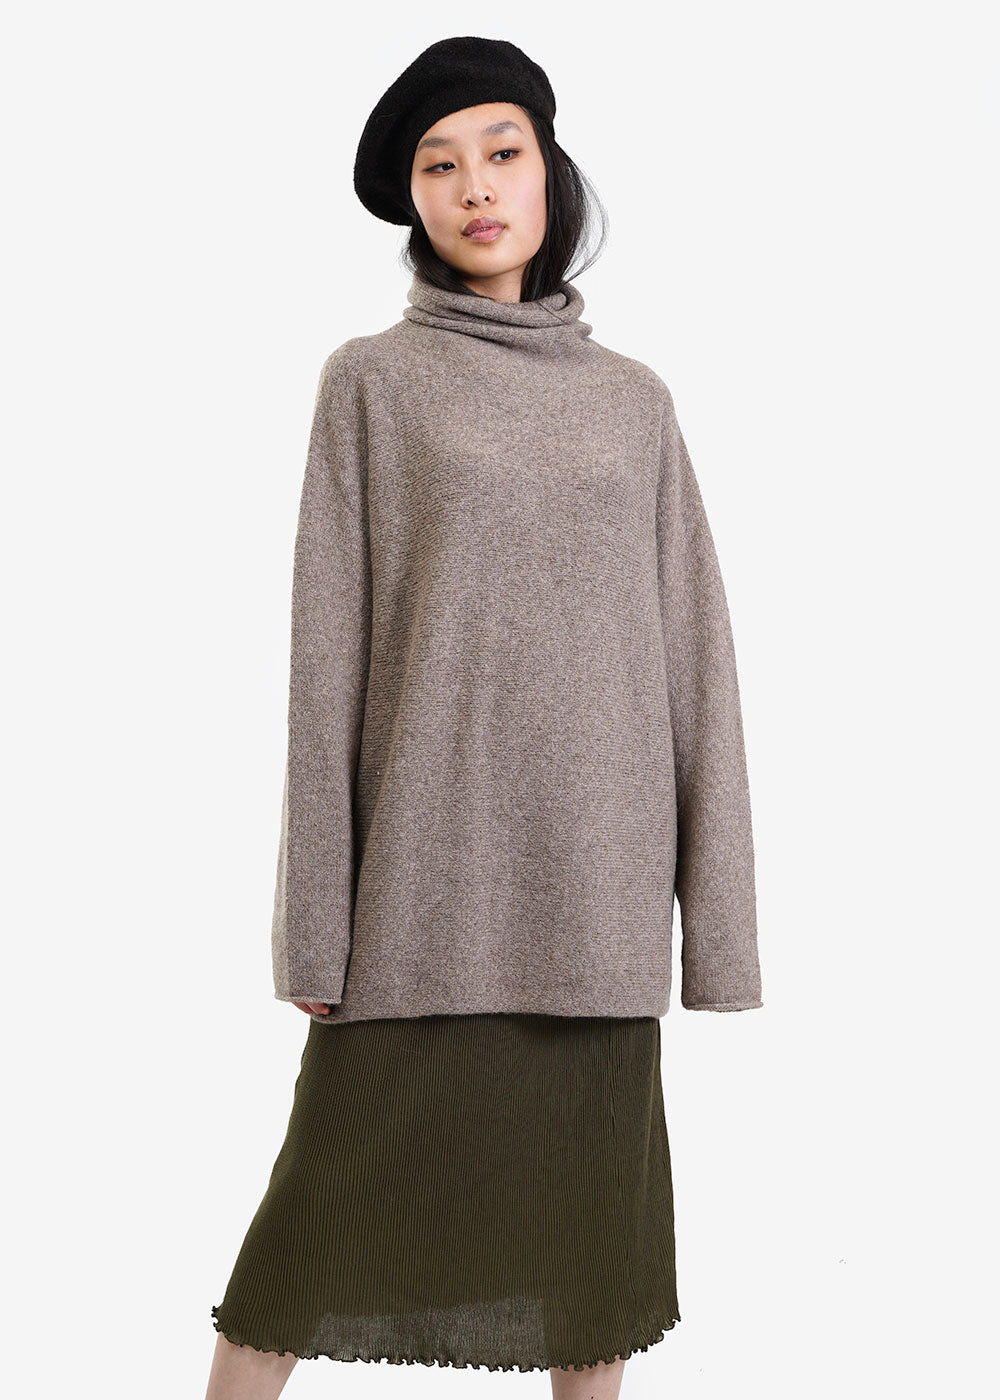 Lauren Manoogian Mouse Horizontal Cowlneck Sweater — Shop sustainable fashion and slow fashion at New Classics Studios